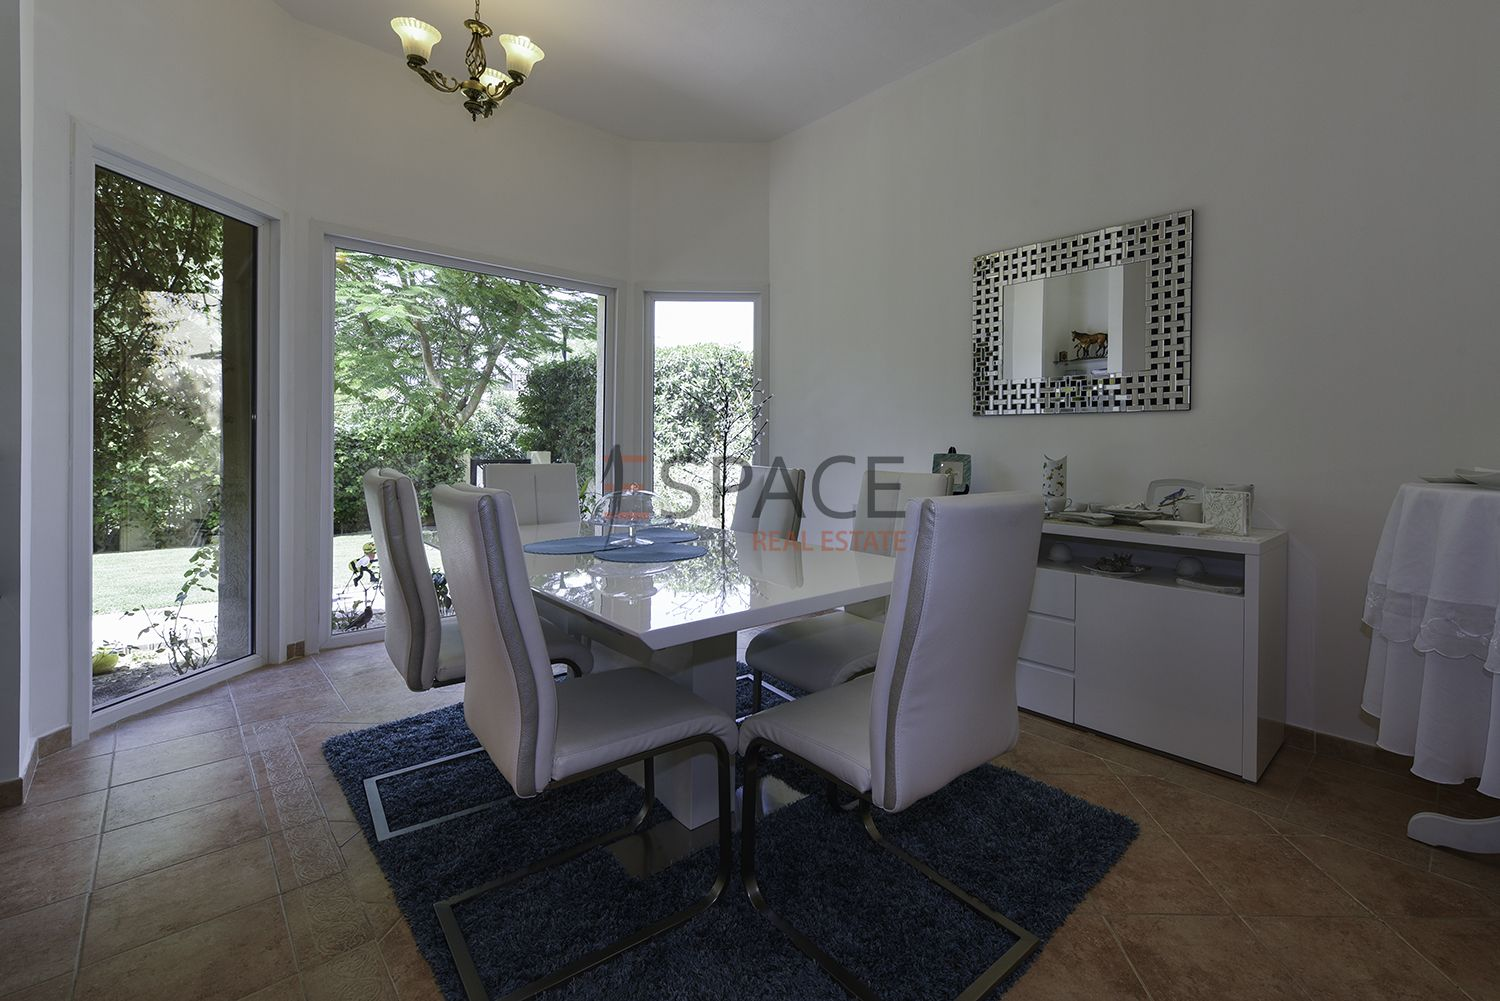 Immaculate Townhouse In Green Community Motor City Real Estate Agent Dubai Espace Motor City Townhouse Real Estate Agent